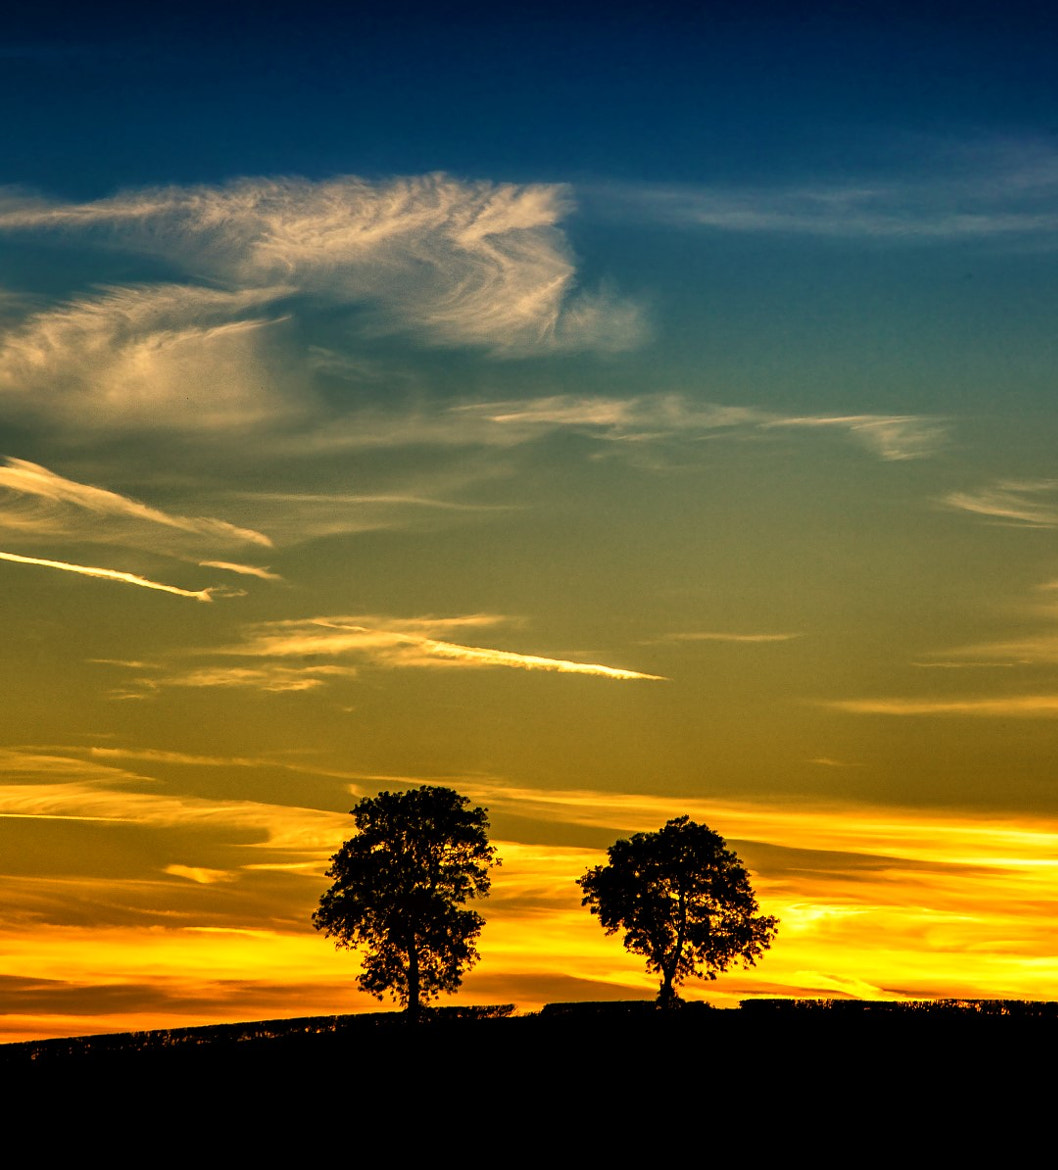 Photograph Autumn Sunset by Alan Sheers on 500px